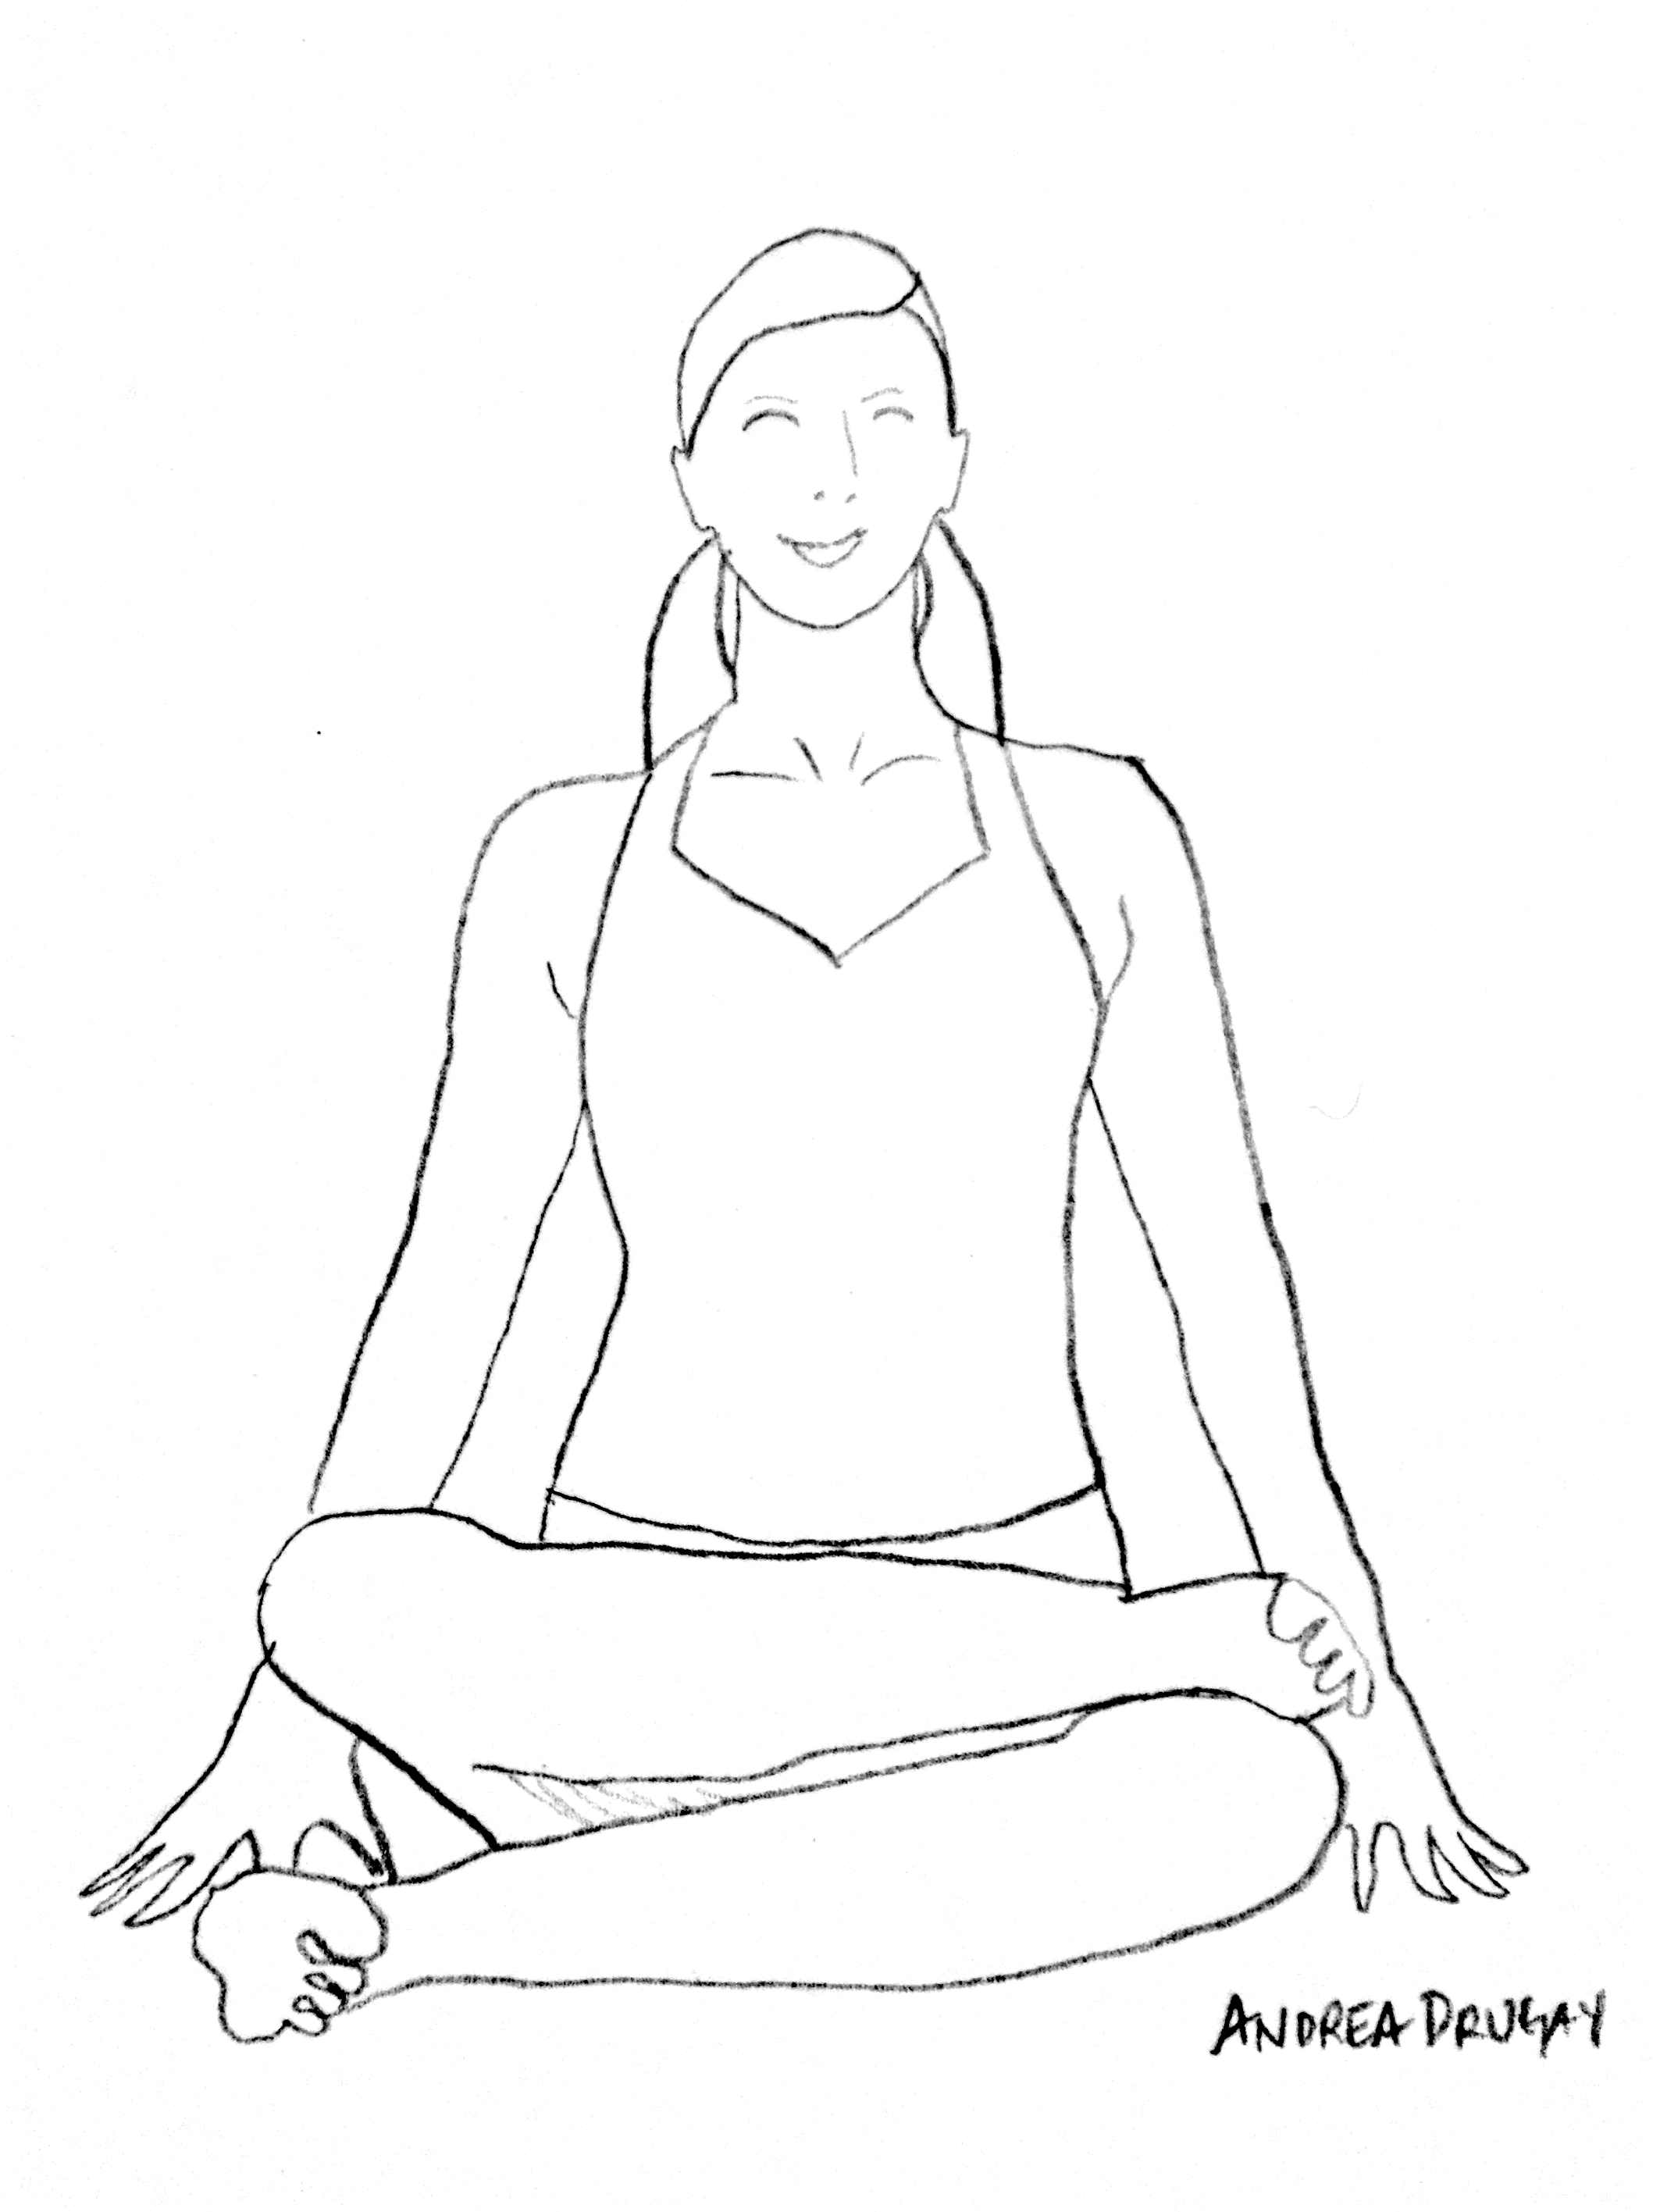 Yoga Poses For Your It Band Andrea Drugay